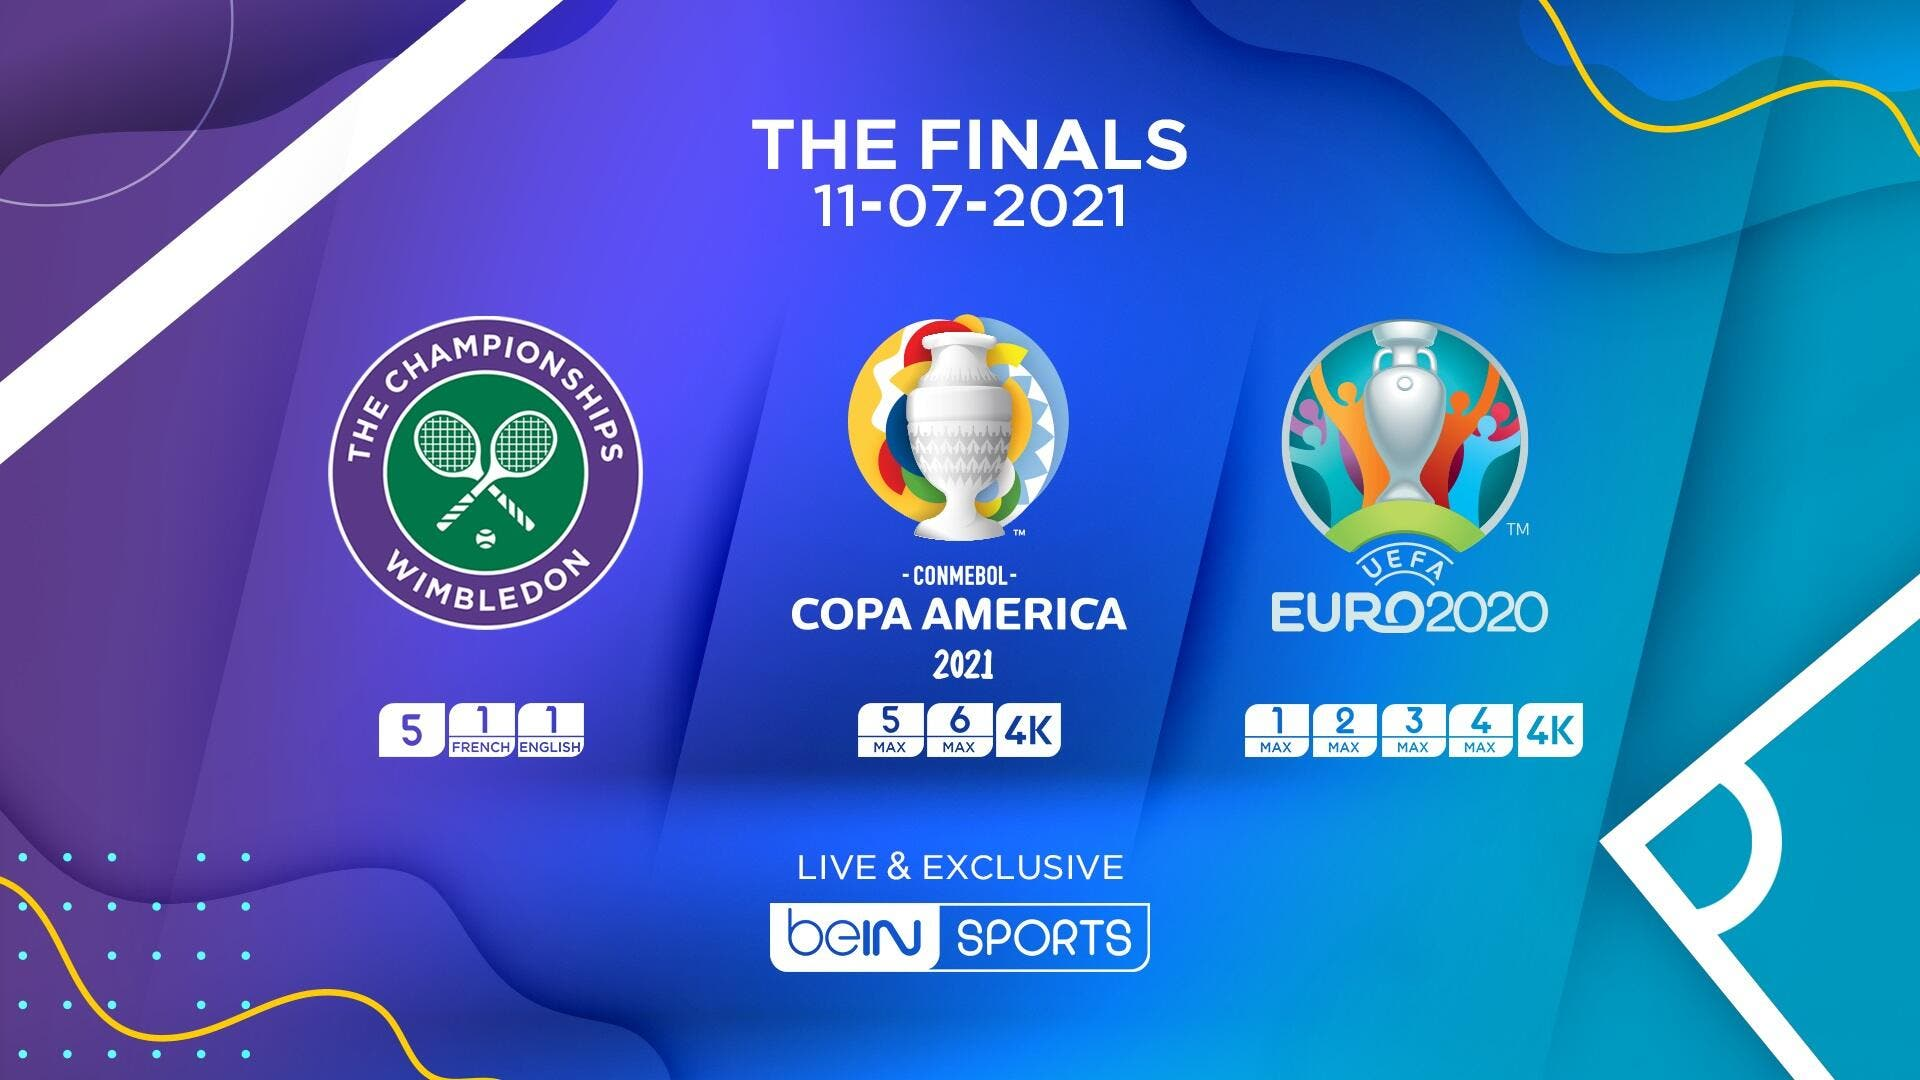 beIN SPORTS to Broadcast Unforgettable Day of Sports with UEFA EURO 2020, Copa America 2021, and Wimbledon 2021 Men's Single Finals   Al Bawaba